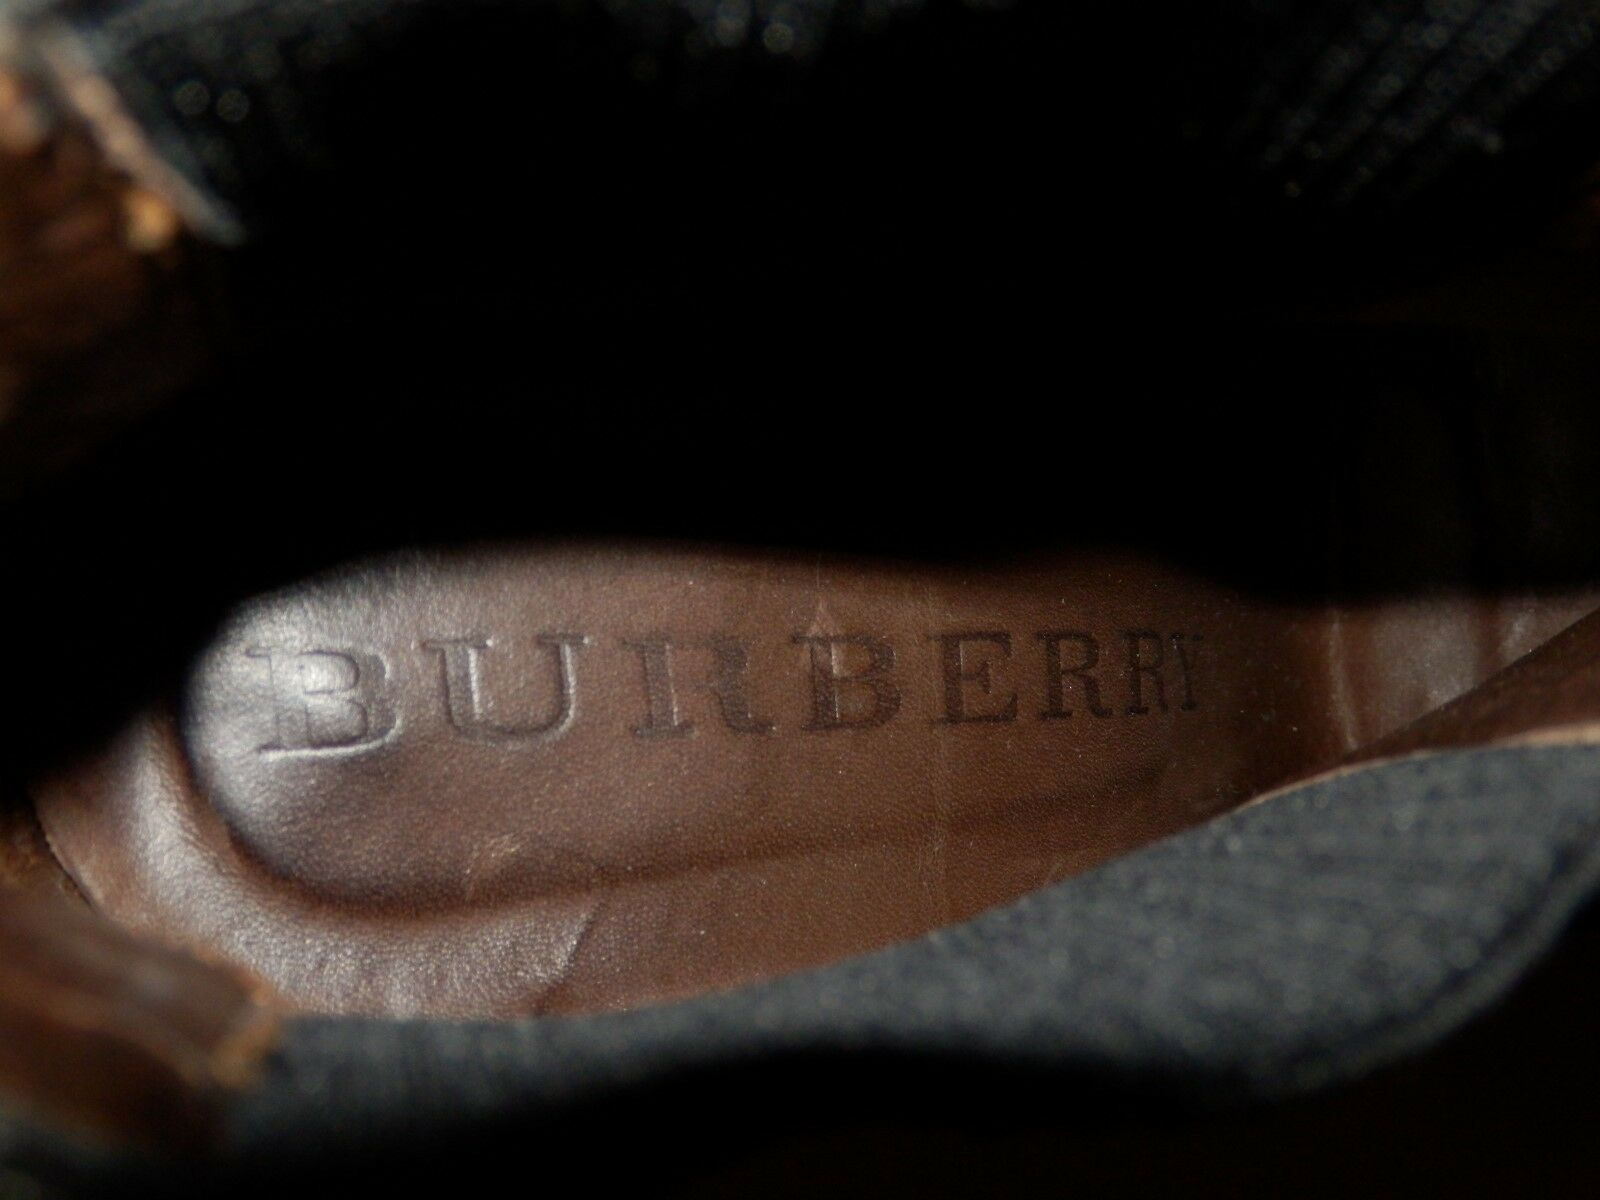 BURBERRY - LOW BOOTS - shoes - POINTURE POINTURE POINTURE 36 1 2 - GENUINE 827928